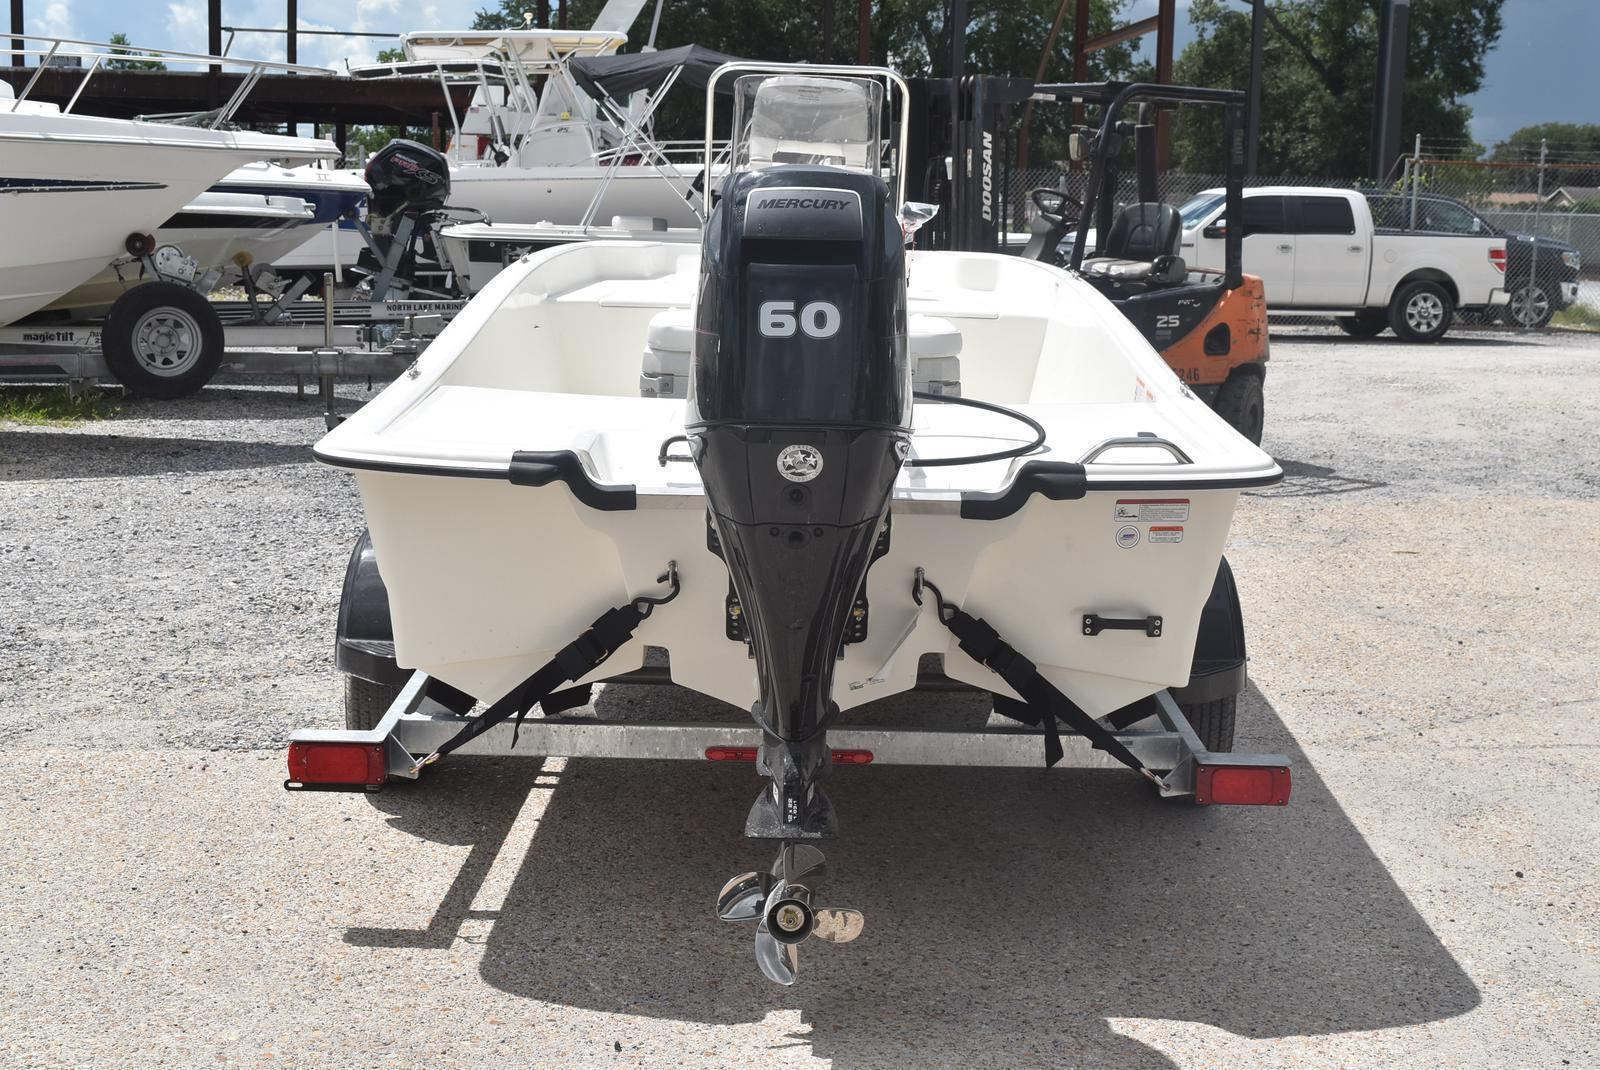 2020 Mako boat for sale, model of the boat is Pro Skiff 17, 75 ELPT & Image # 565 of 702